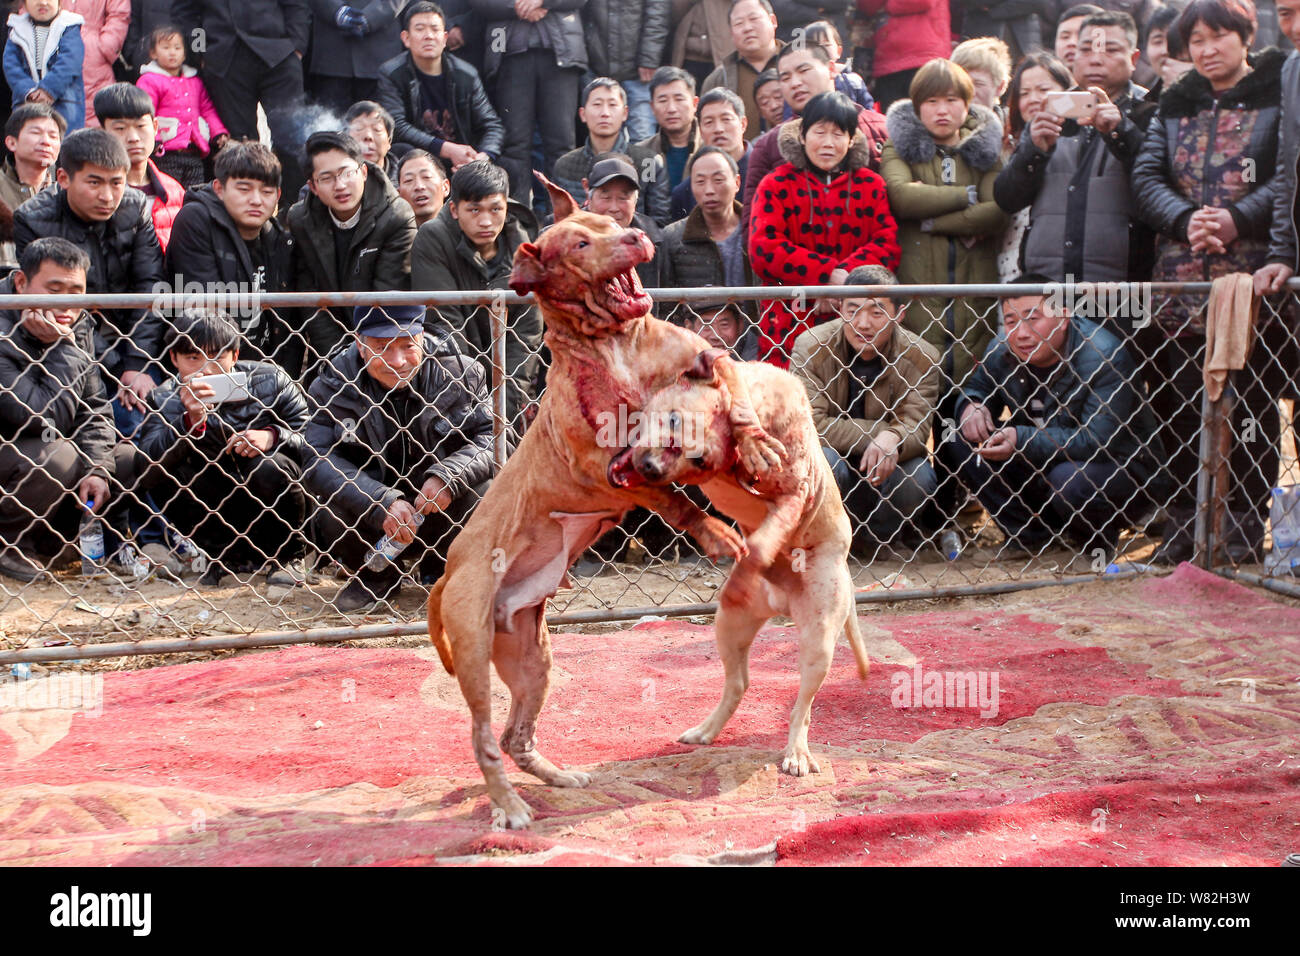 Dog Fight Stock Photos & Dog Fight Stock Images - Page 2 - Alamy